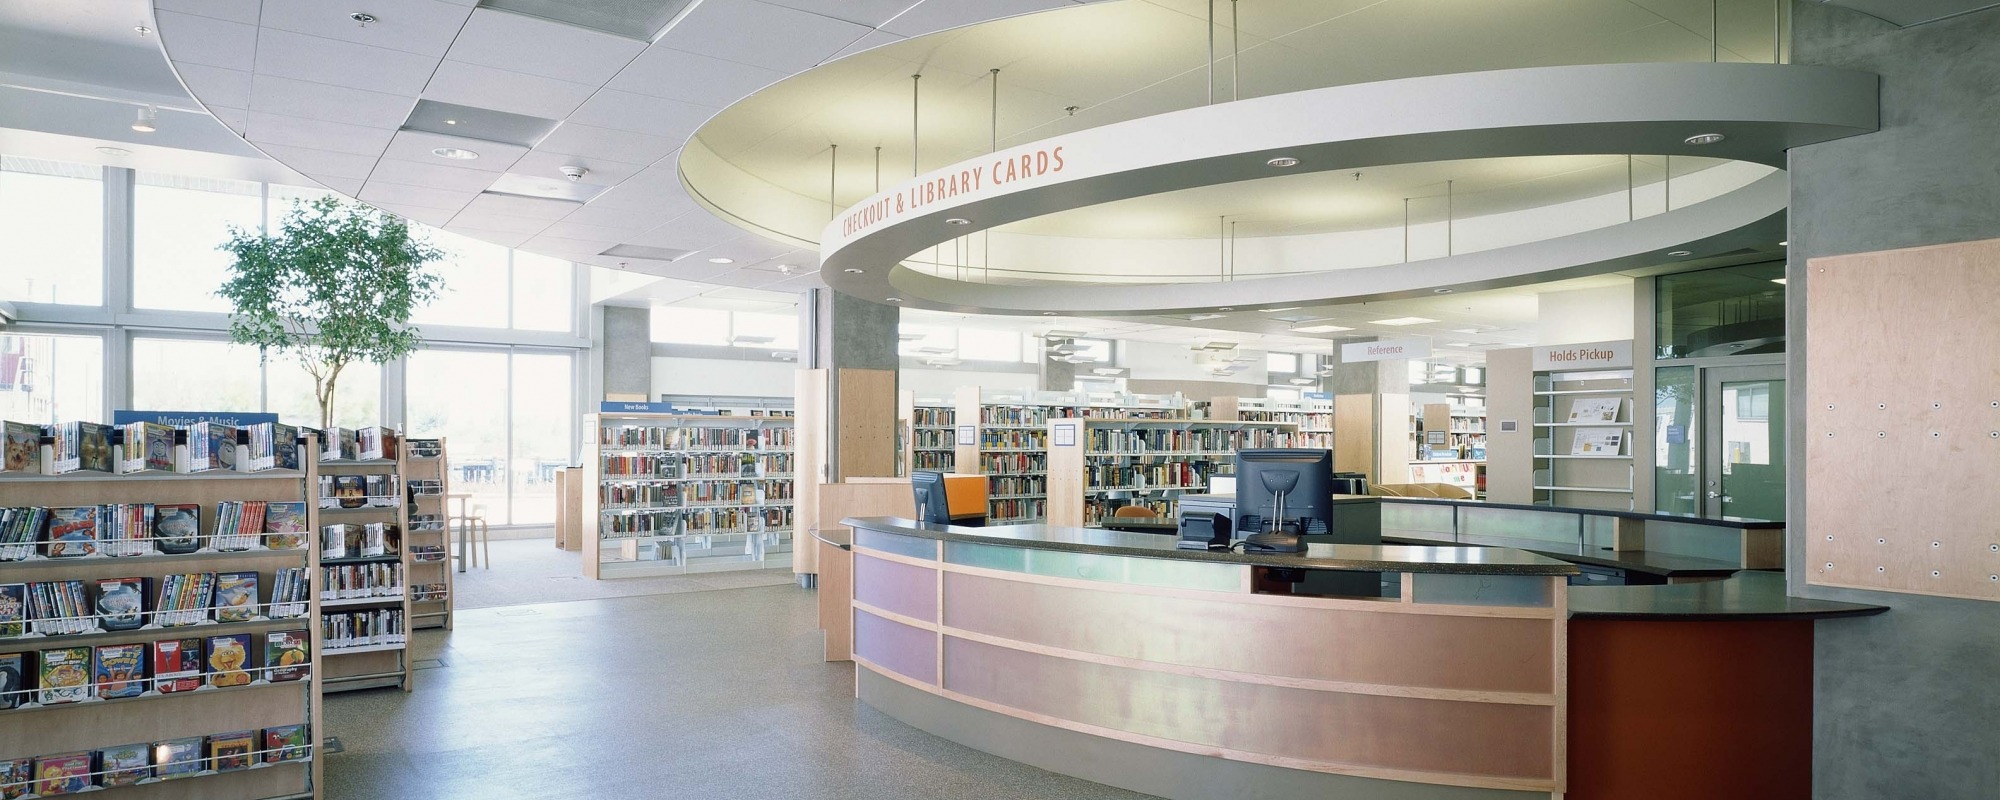 Mission Bay Branch Library